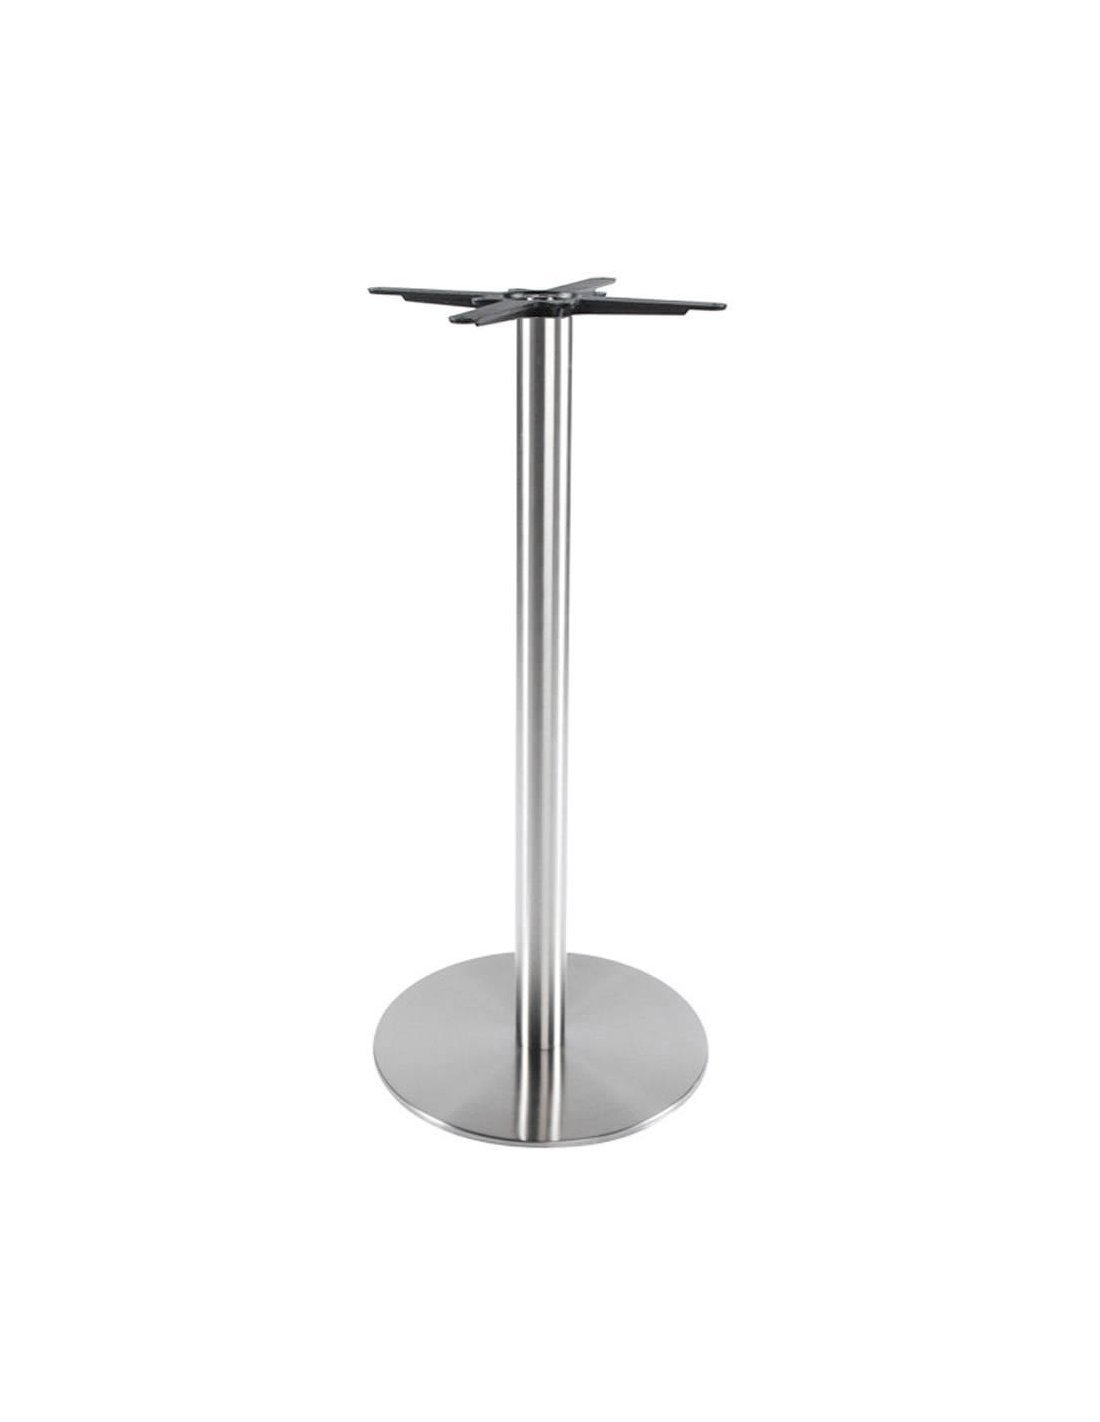 Pied De Table 110 Cm.Pied De Table 110cm Kokoon Design Argent